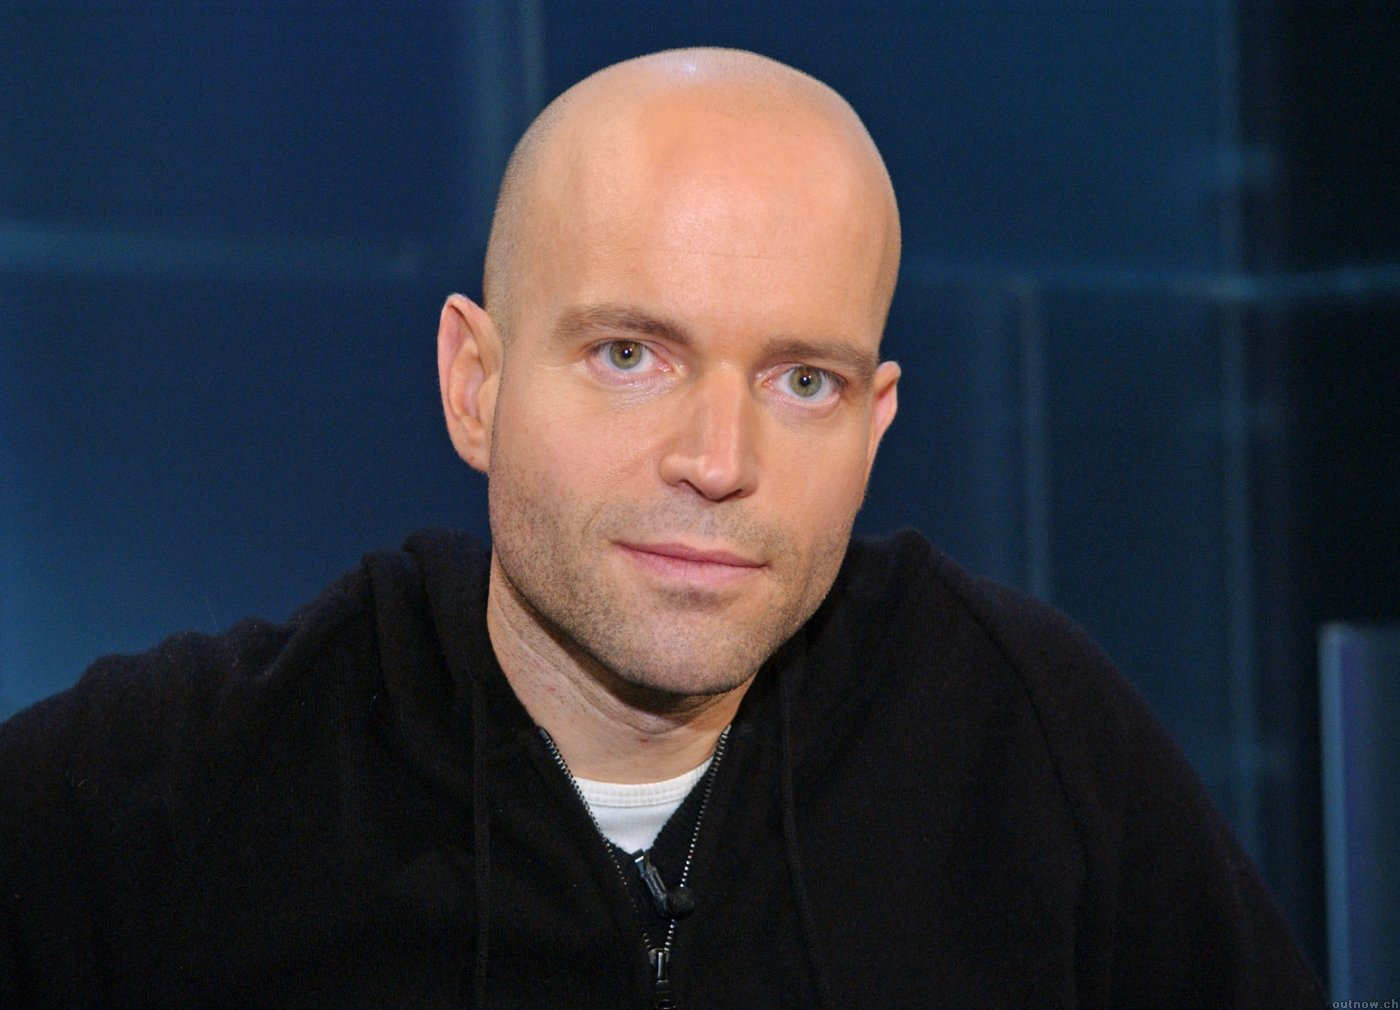 marc forster filmsmarc forster sänger, marc forster imdb, marc forster au revoir, mark forster alter, marc forster choere, marc forster director, marc forster films, marc forster biography, marc forster, marc forster flash mich, marc forster youtube, marc forster musik, mark forster bauch und kopf, marc forster facebook, marc forster stay, mark forster konzert, marc forster schwul, marc forster album, marc forster regisseur, marc forster freundin